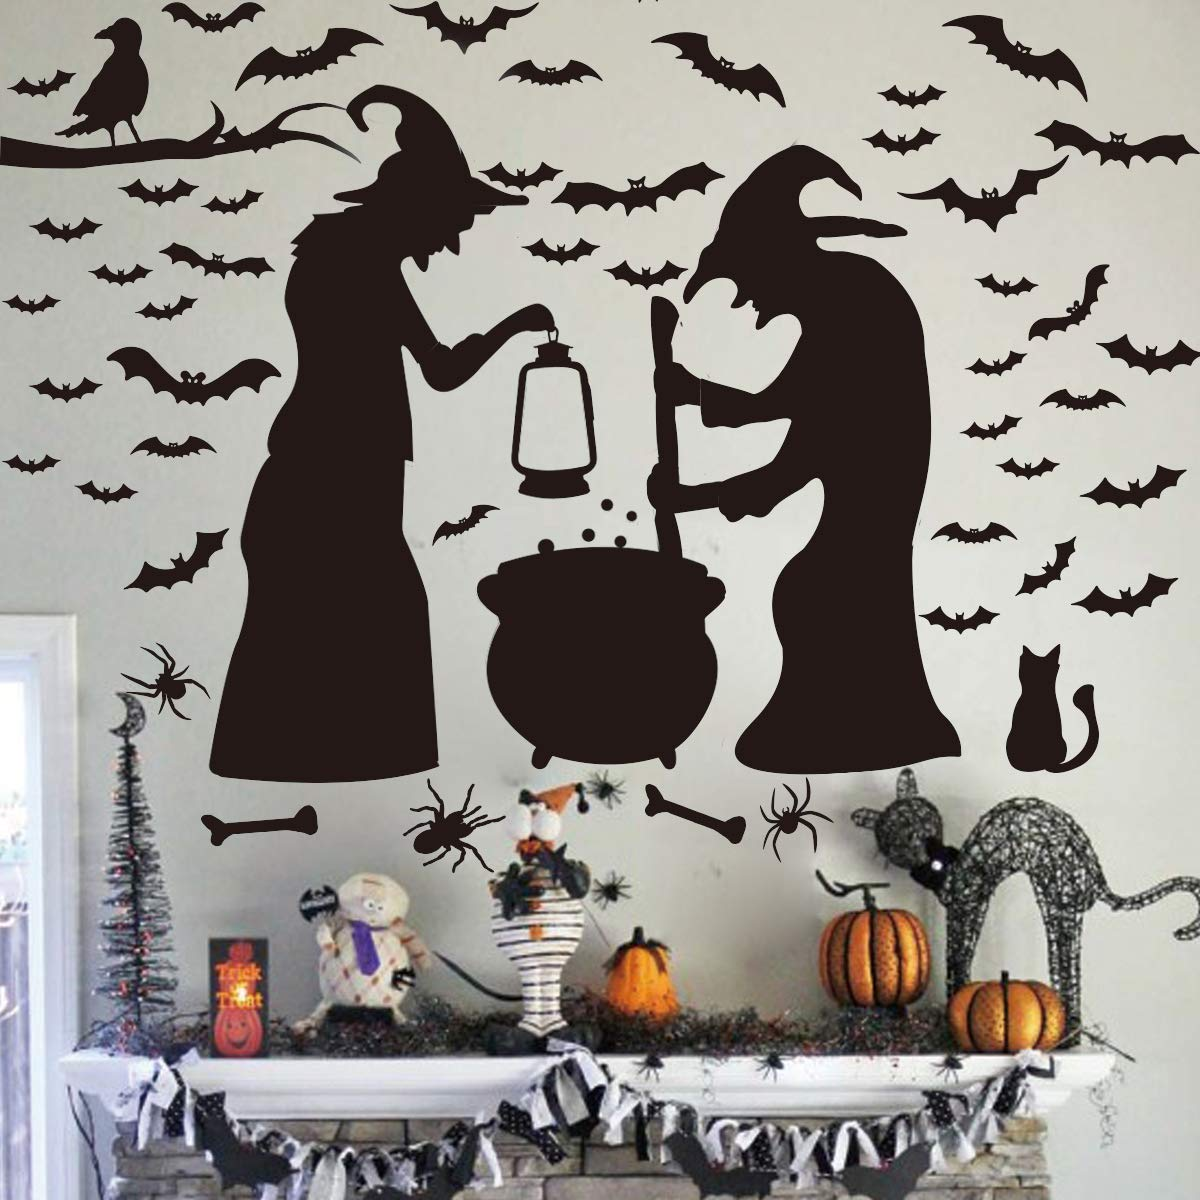 Ivenf Halloween Decorations, Wall Decal Window Decor Party Supplies, 2 Witches with Bats Spider Cat and Crow by Ivenf